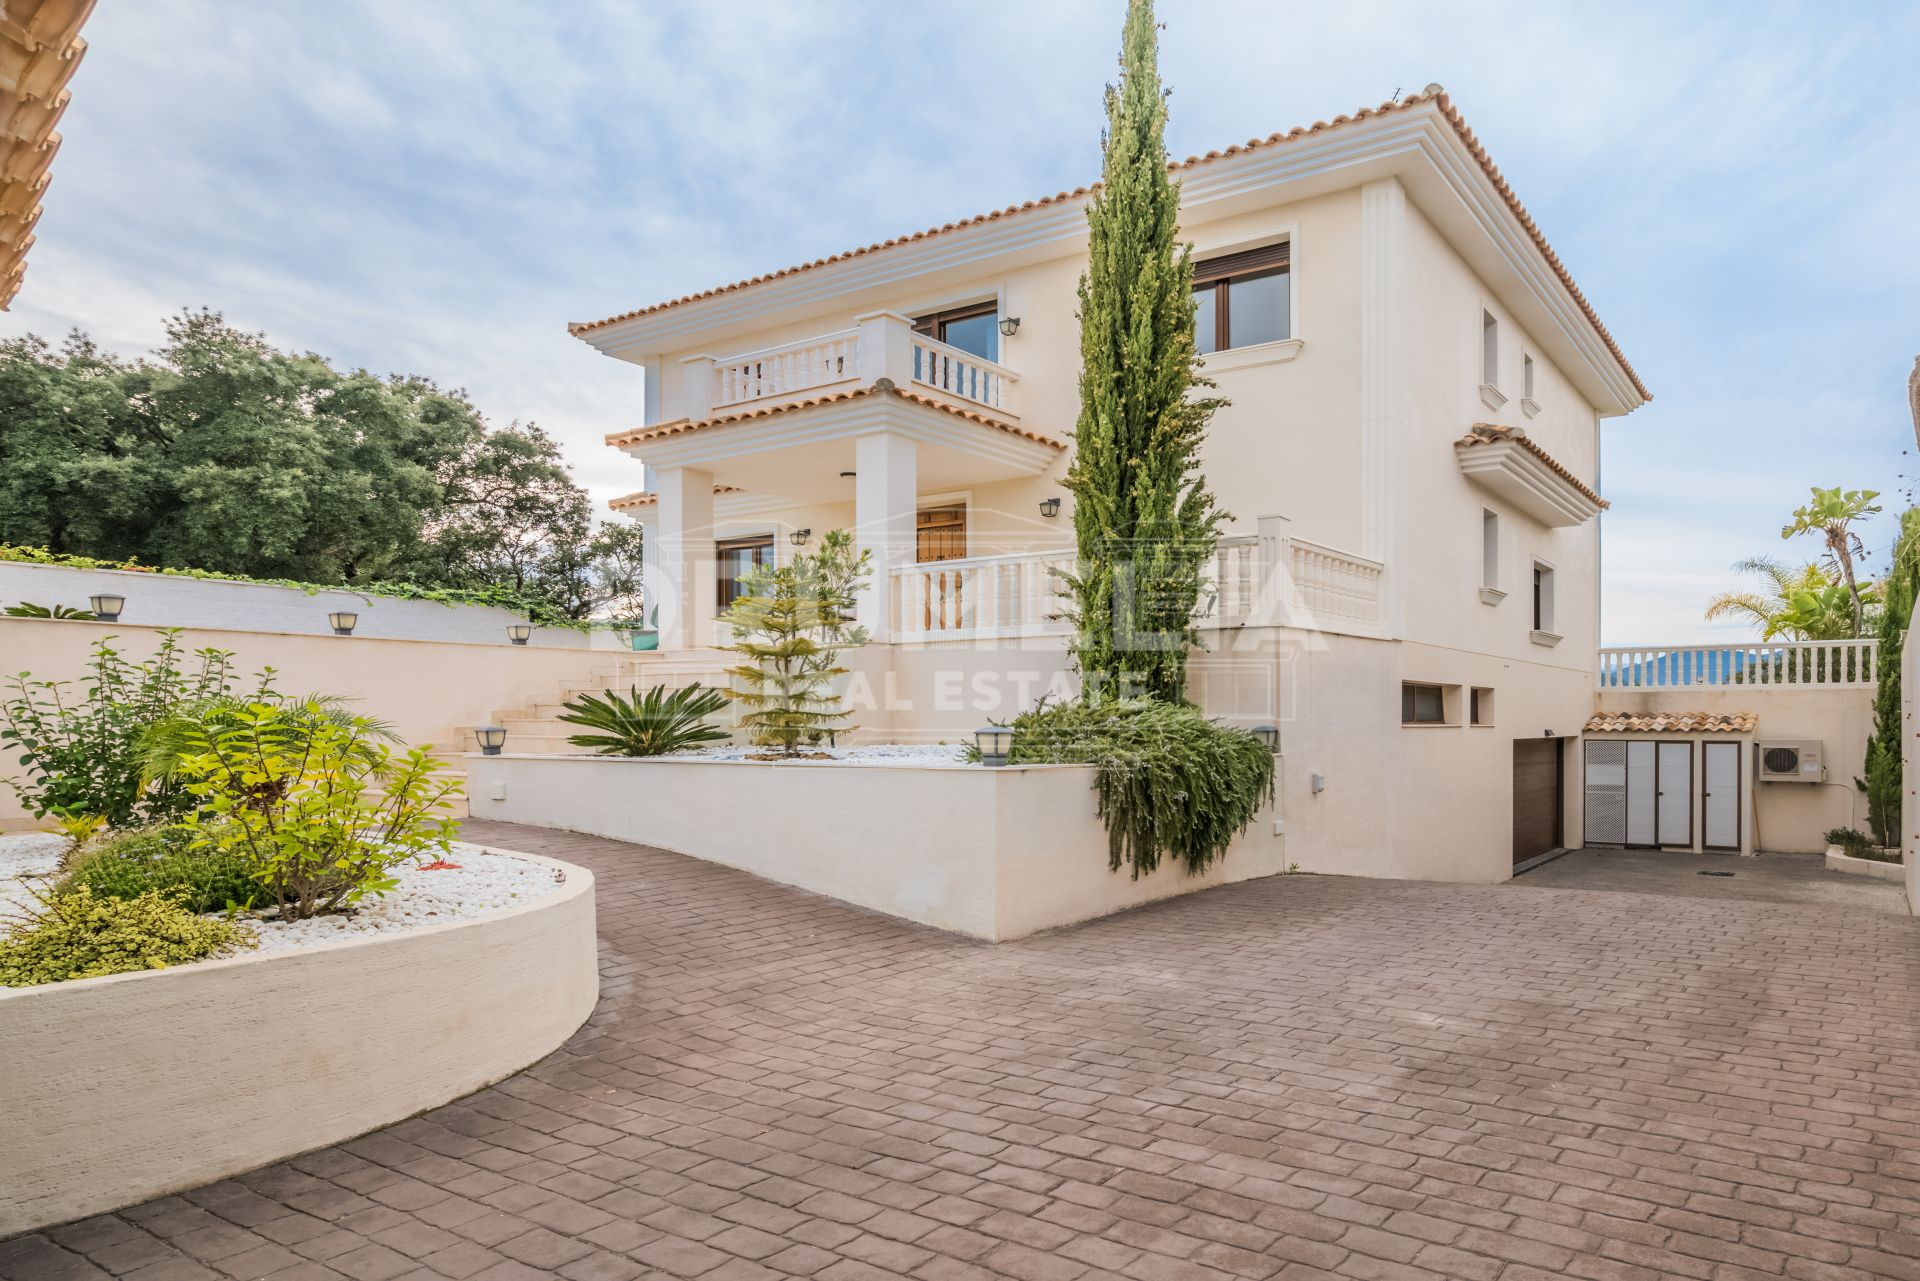 Marbella East, Beautiful Mediterranean Villa in La Mairena, Marbella East.